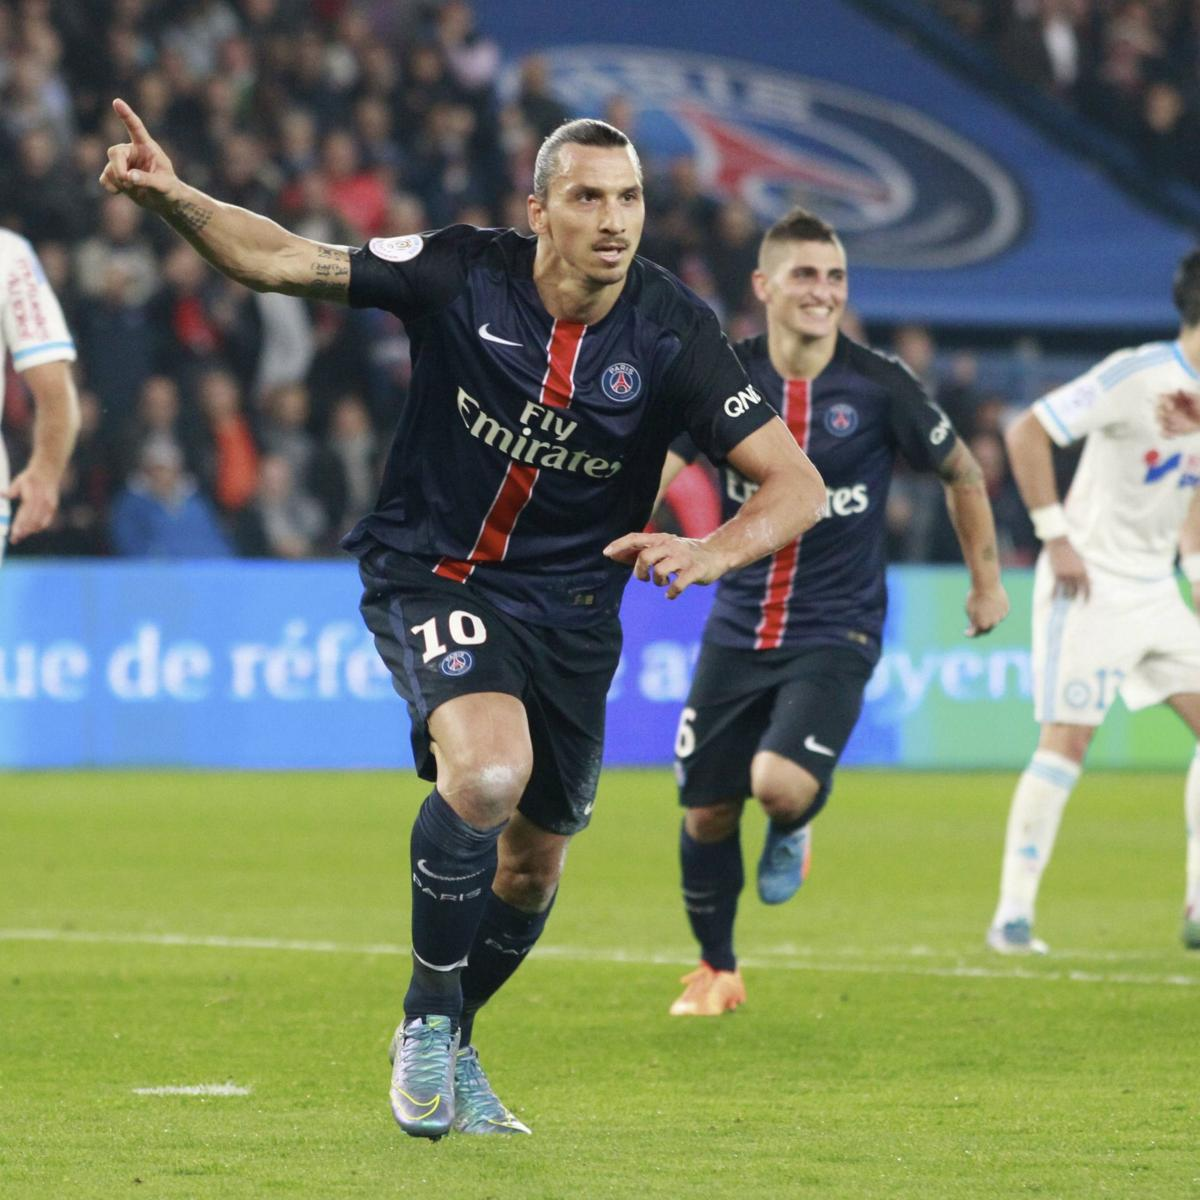 marseille vs psg team news predicted lineups live stream and tv info bleacher report. Black Bedroom Furniture Sets. Home Design Ideas